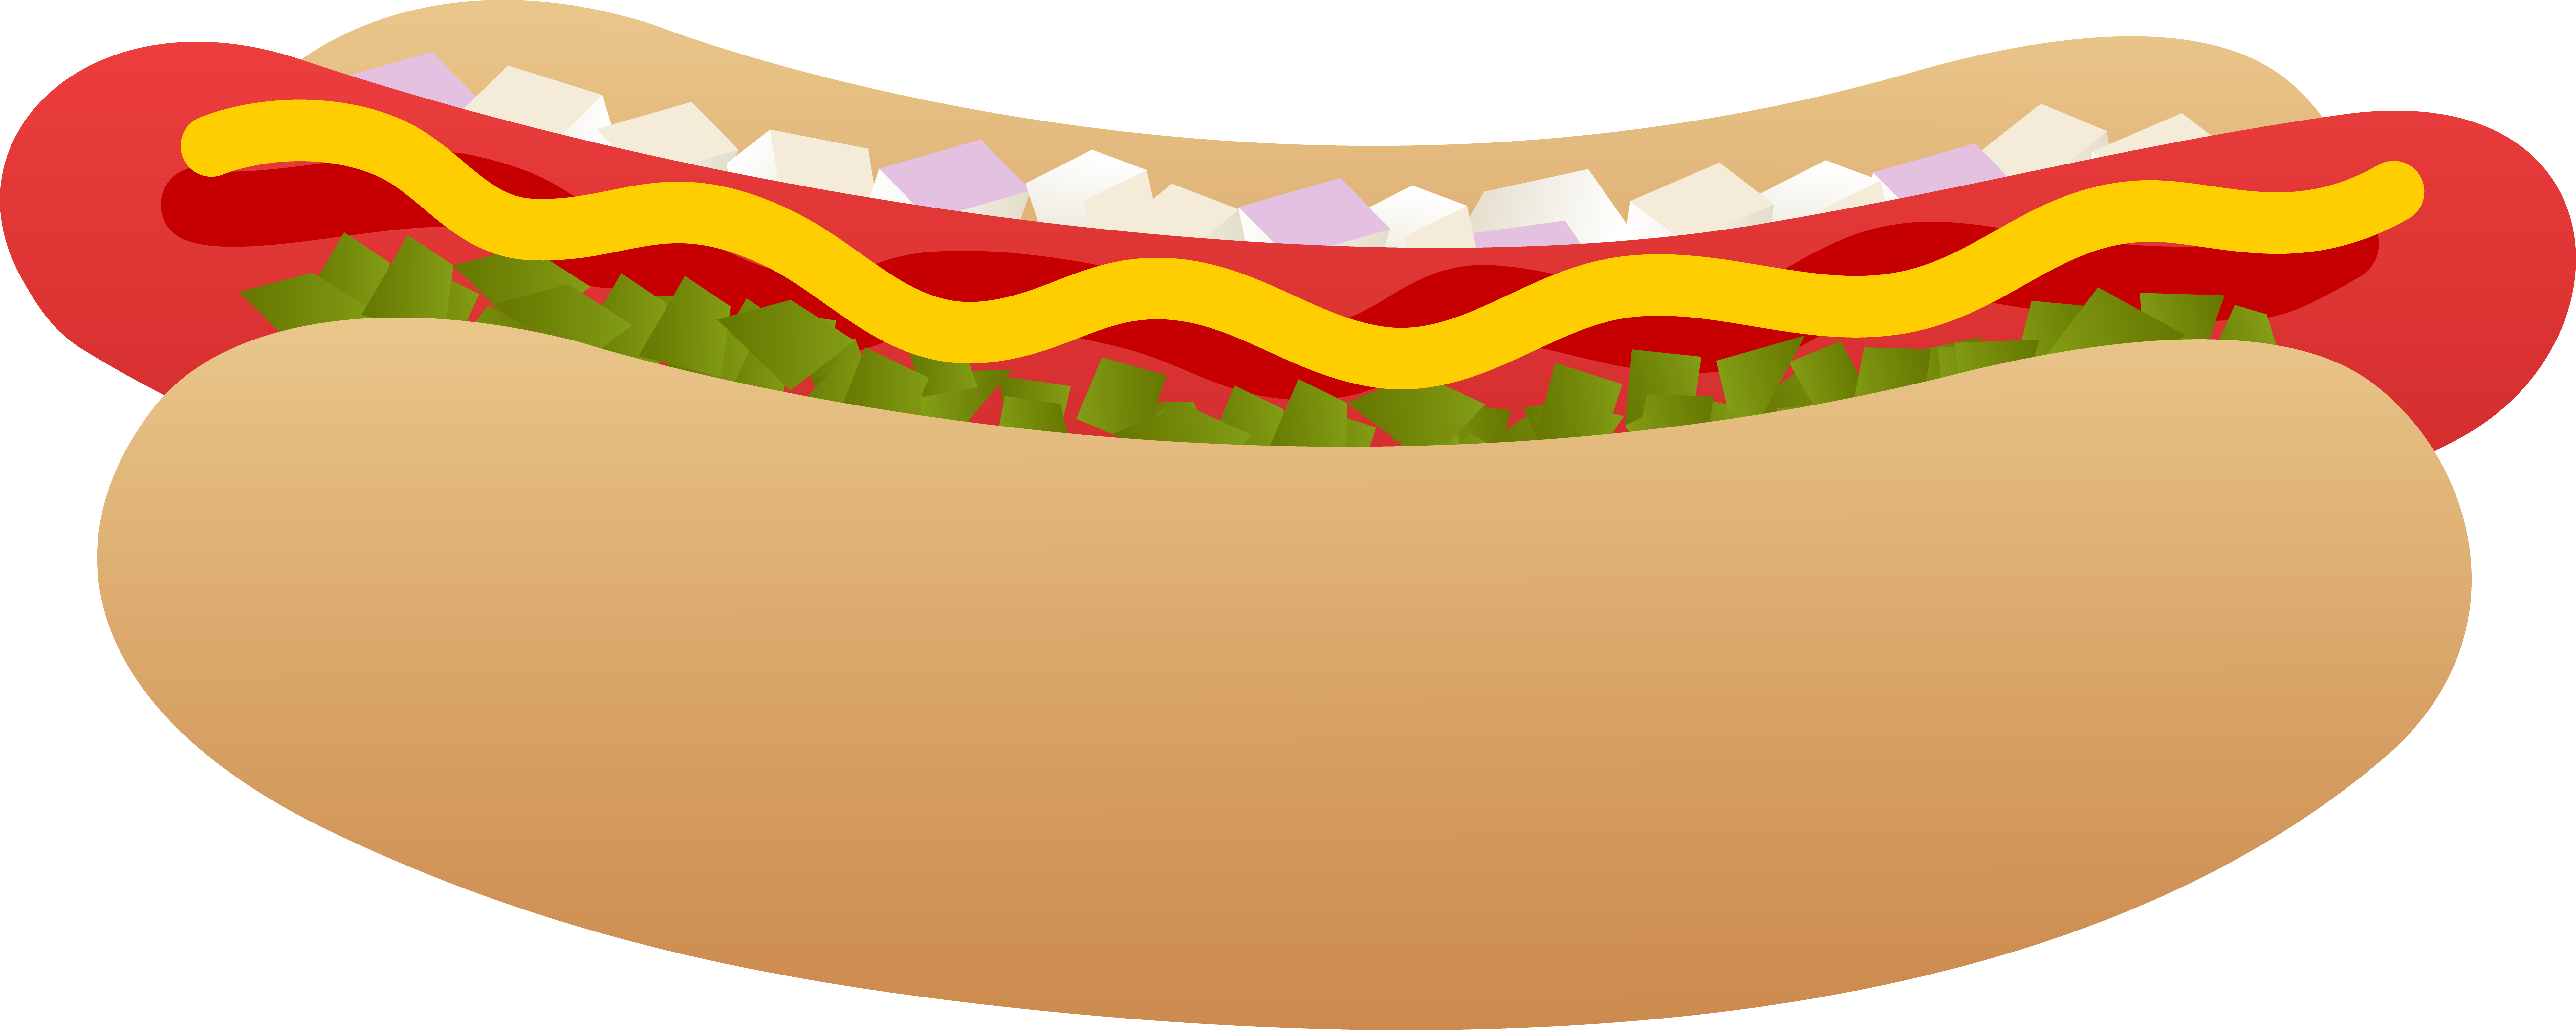 Picture Of Hotdogs - ClipArt Best